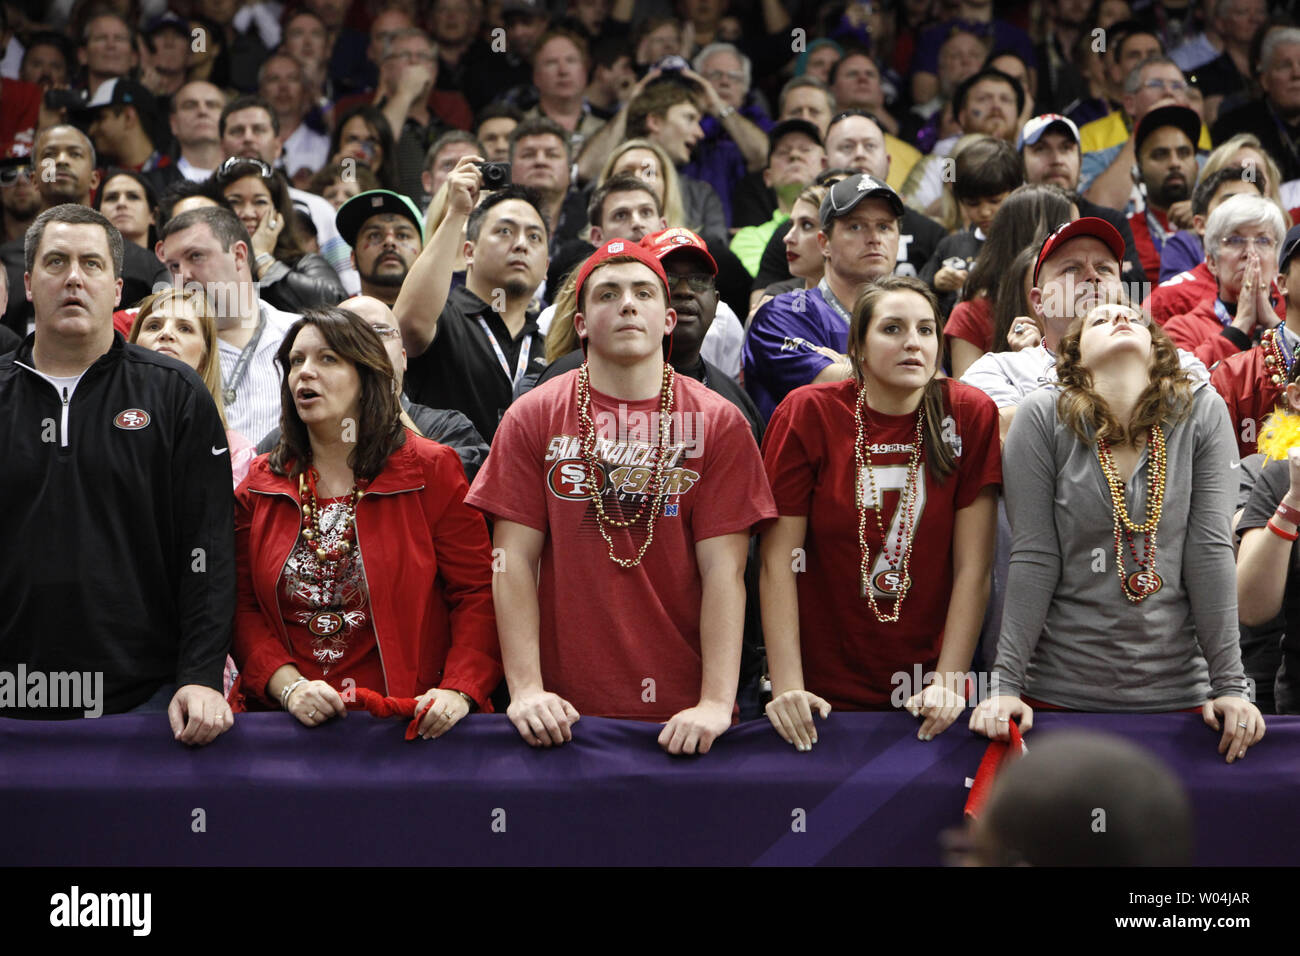 San Francisco 49er fans watch the final seconds as their team loses to the Baltimore Ravens at the Mercedes-Benz Superdome on February 3, 2013 in New Orleans.  UPI/Bevil Knapp - Stock Image